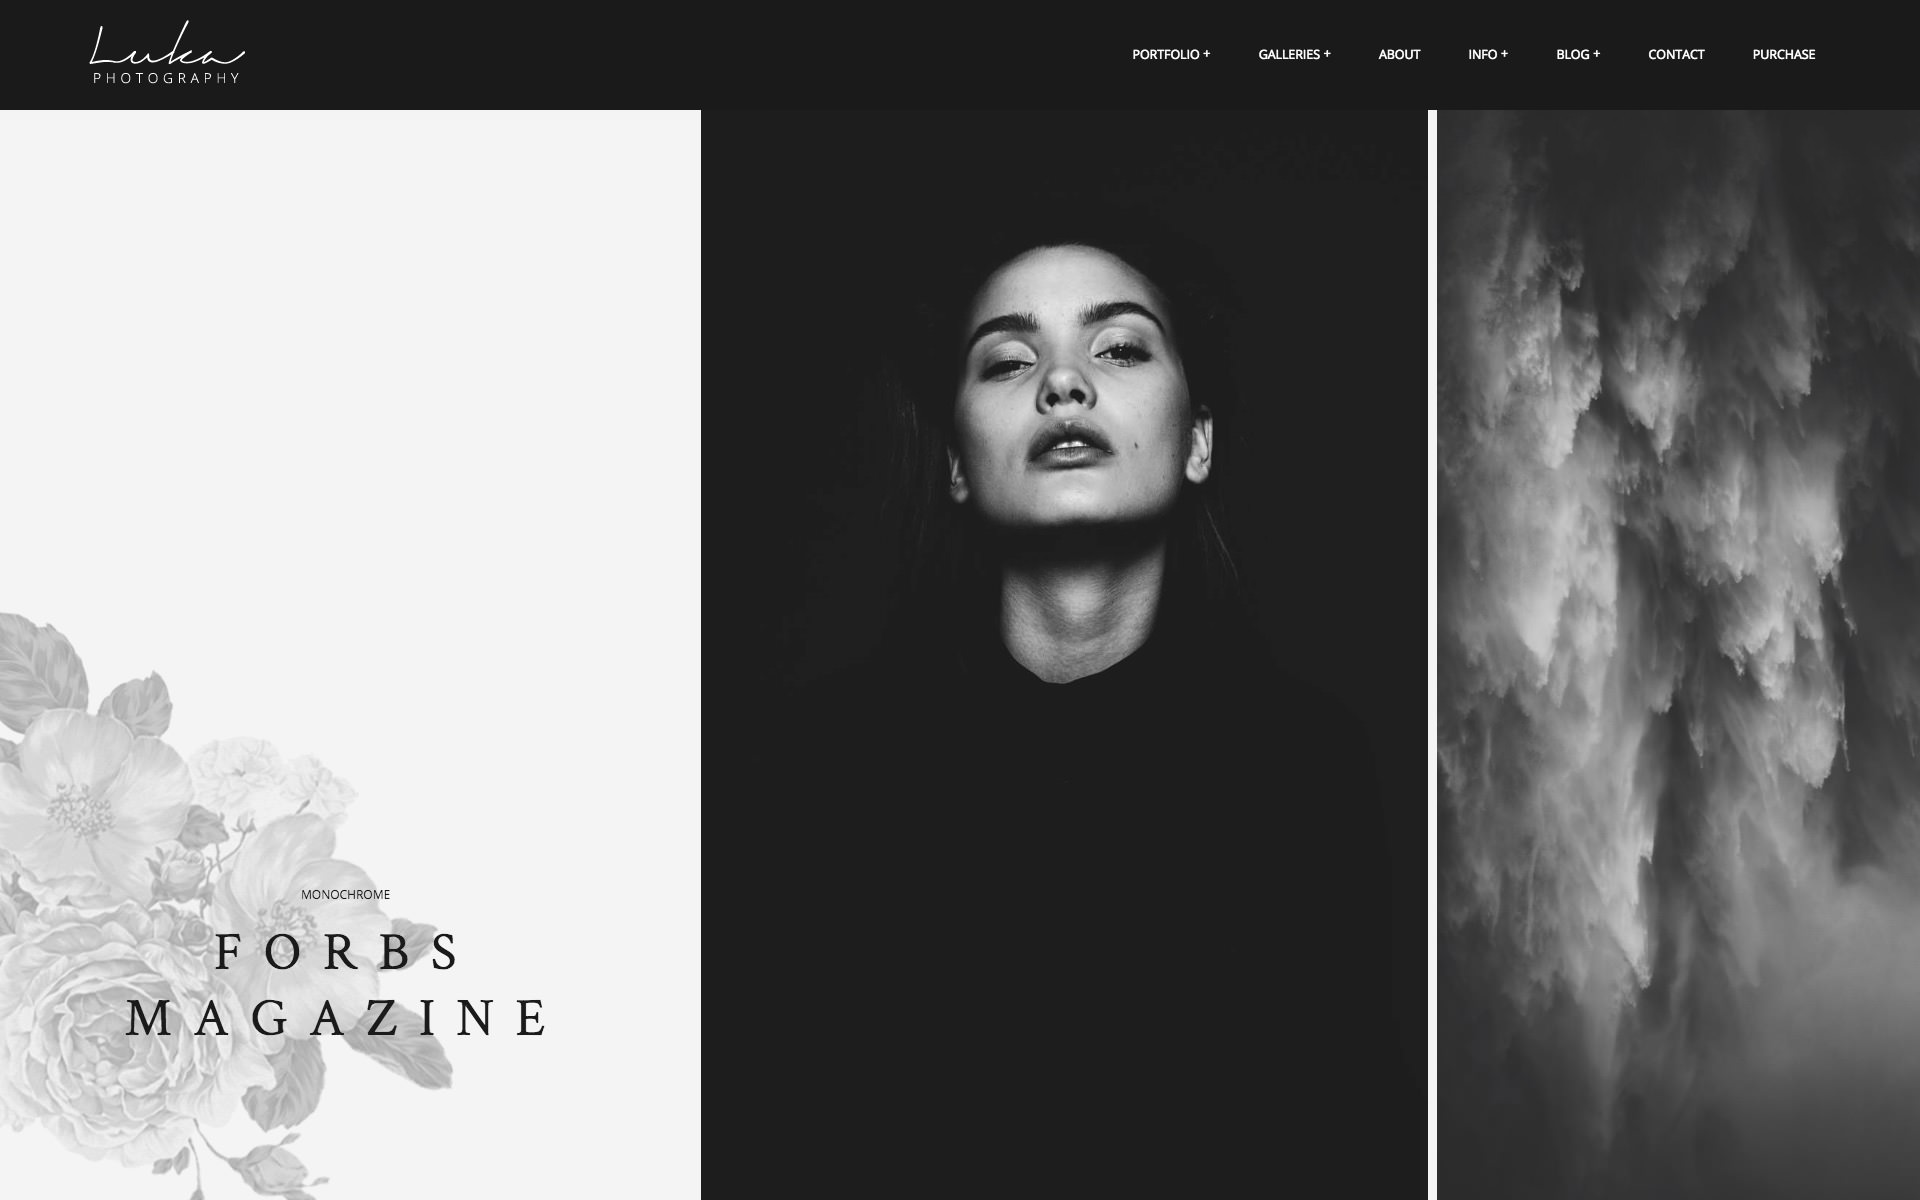 Luka Portfolio Theme for Photographers - horizontal gallery layout without text